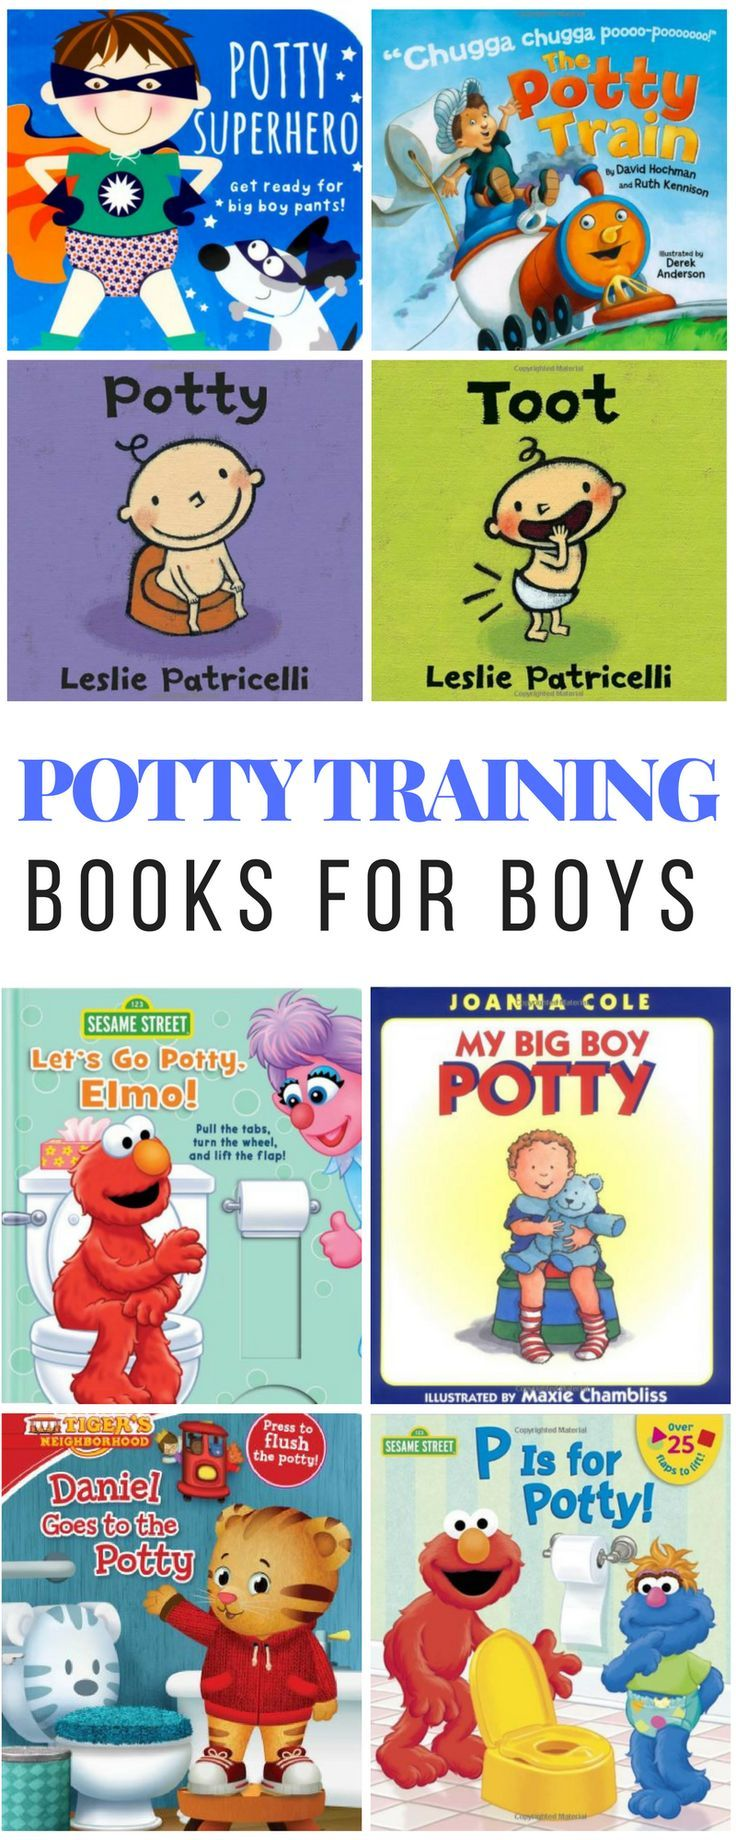 Potty training books for boys / how to potty train a boy in 3 days / potty training tips for girls / potty training boys age 2 / what age to start potty training / potty training boys age 3 / how to potty train a toddler / potty training problems / potty training schedule